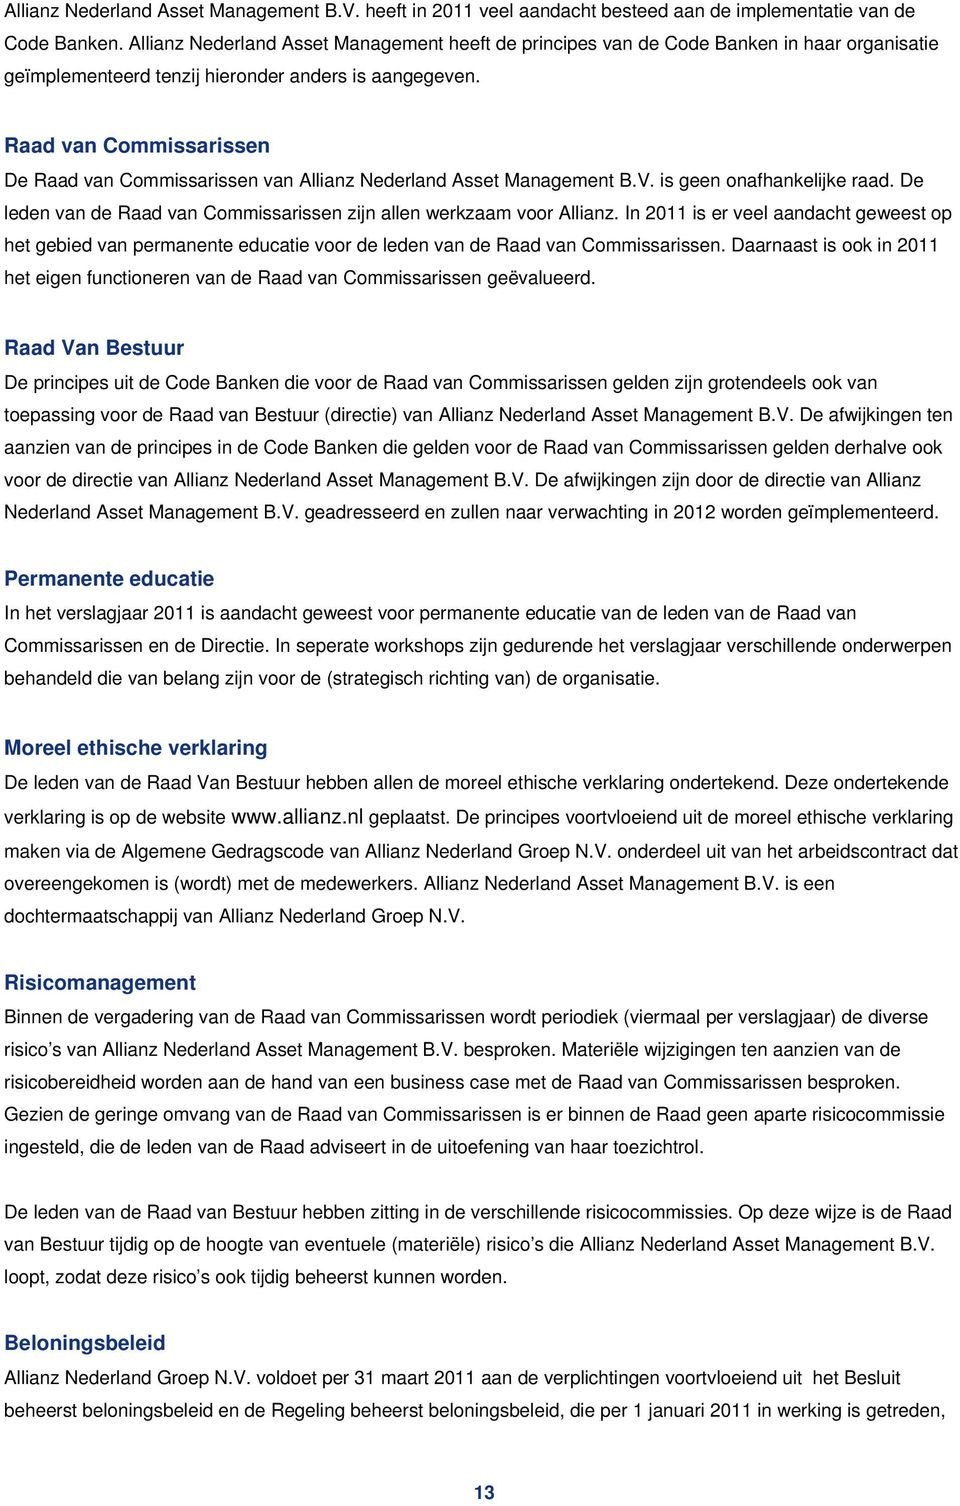 Raad van Commissarissen De Raad van Commissarissen van Allianz Nederland Asset Management B.V. is geen onafhankelijke raad. De leden van de Raad van Commissarissen zijn allen werkzaam voor Allianz.